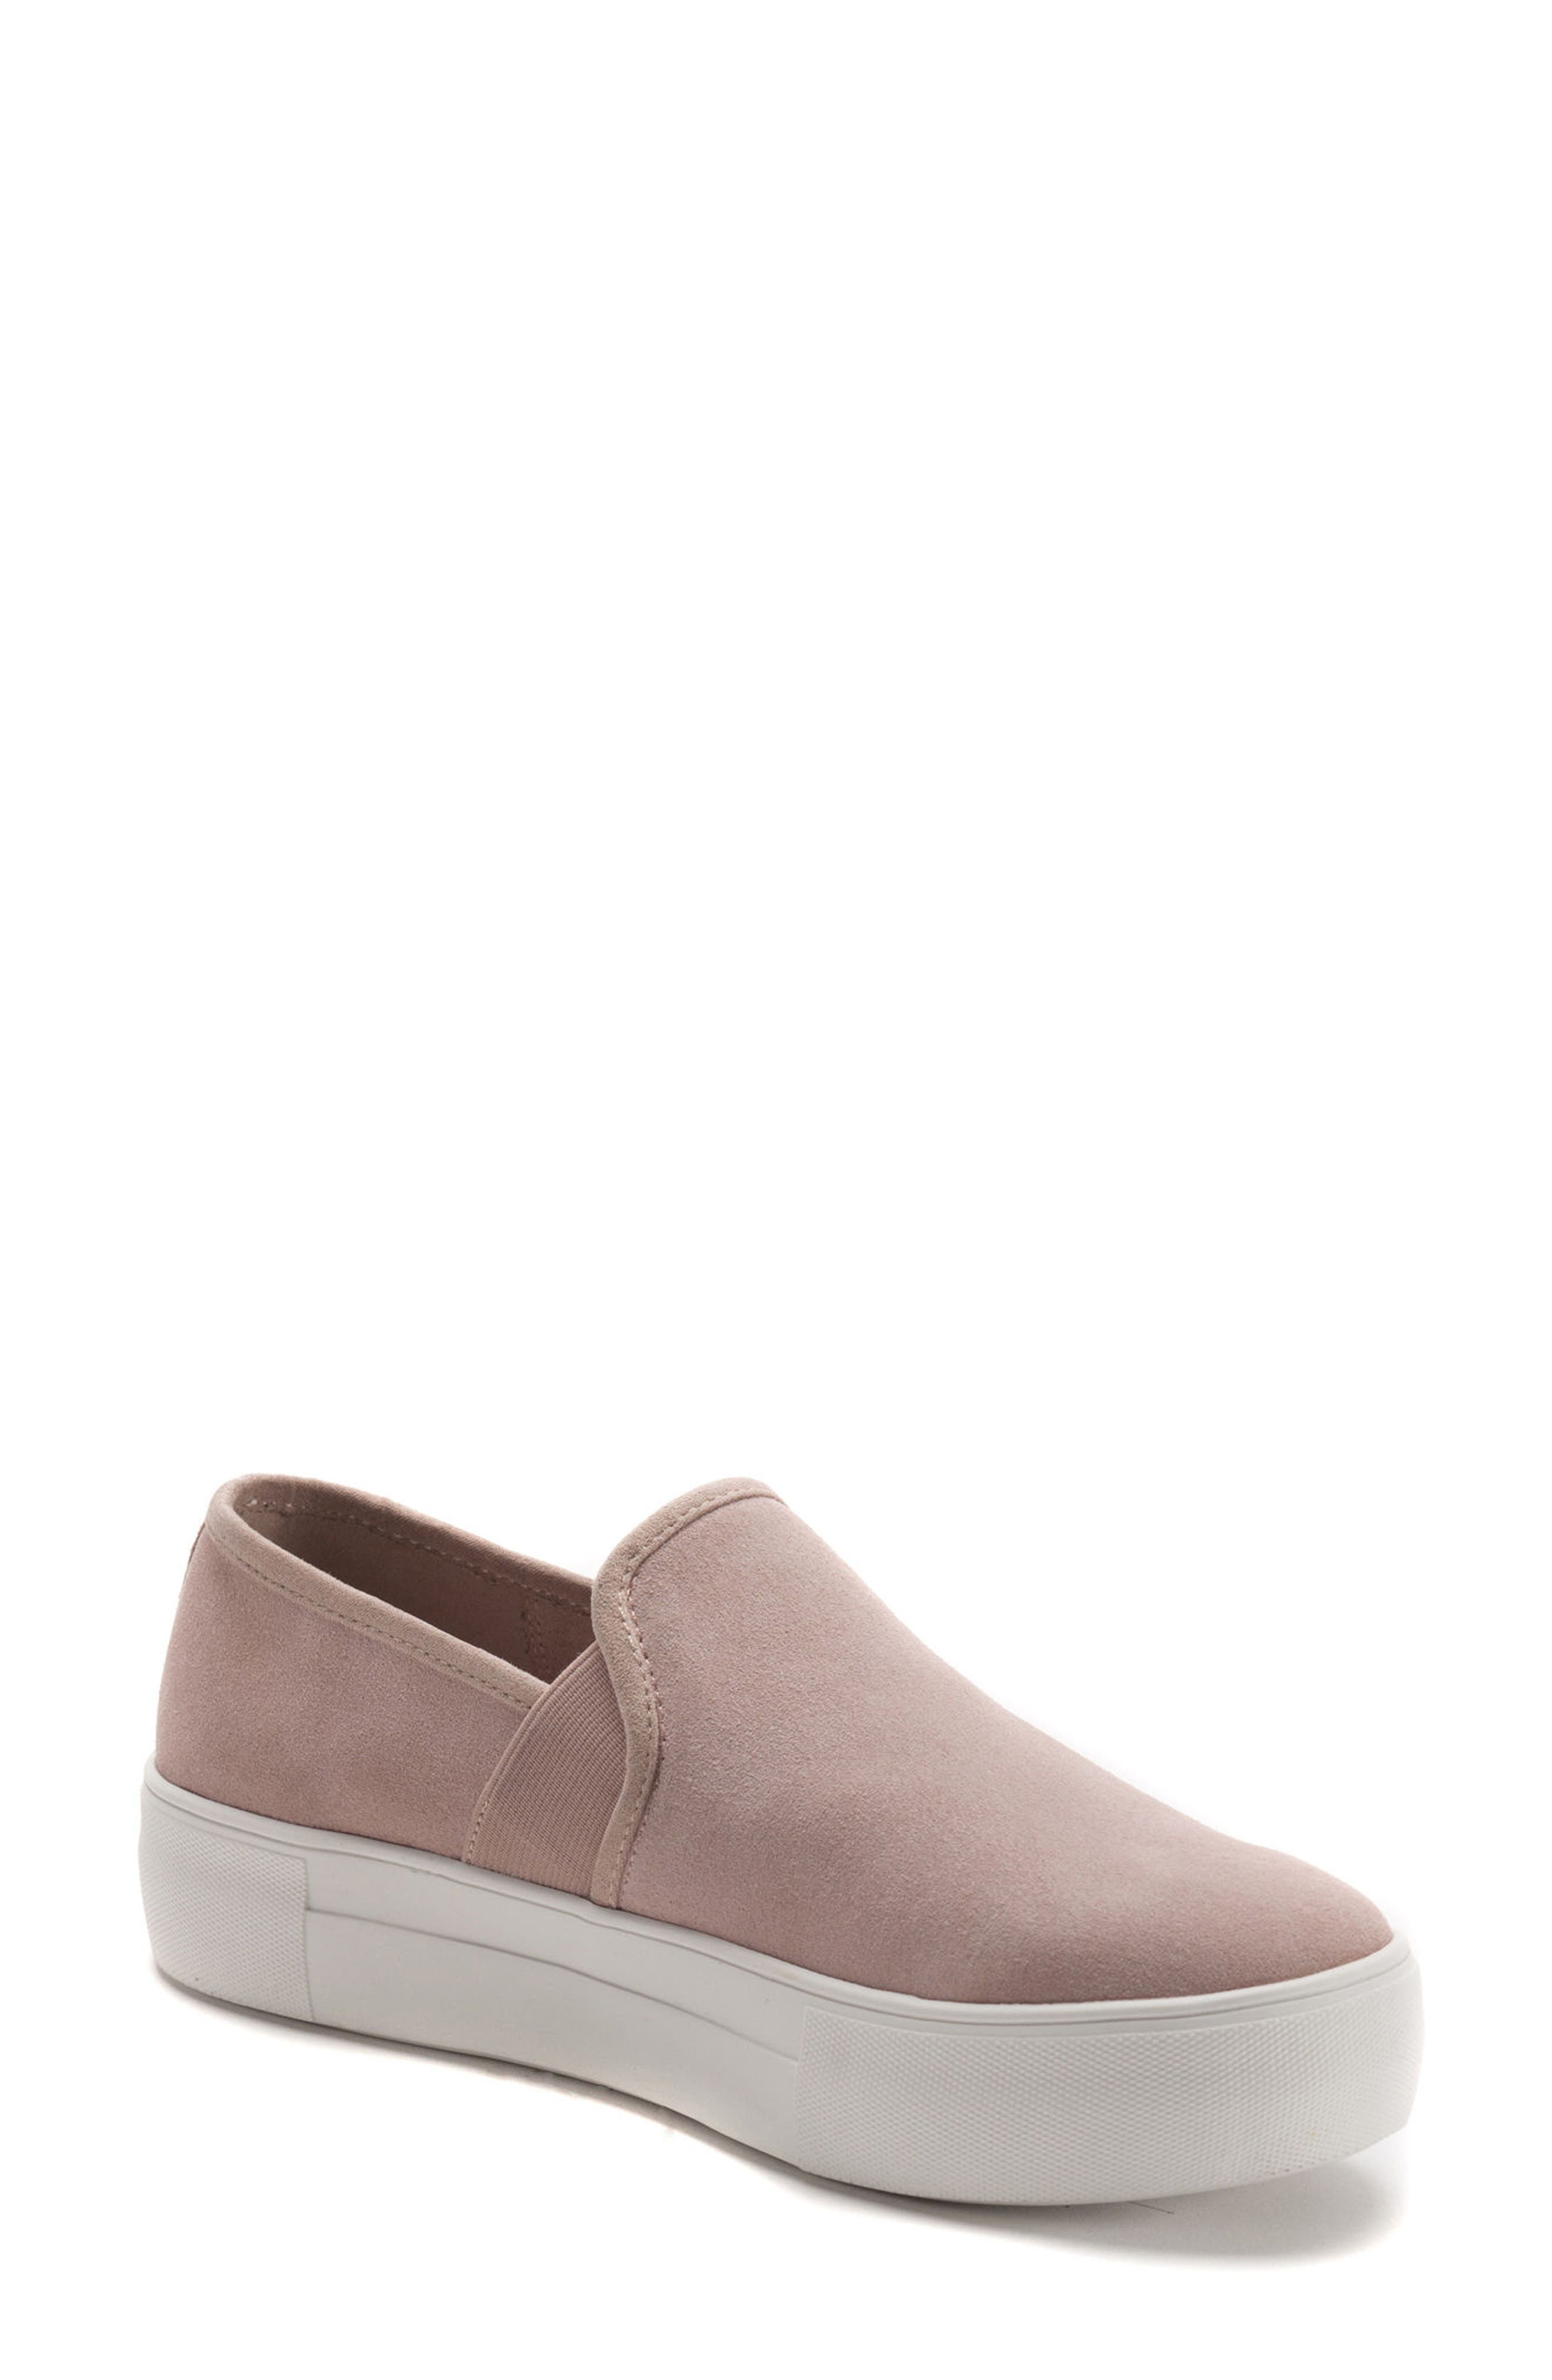 Glance Waterproof Sneaker,                             Main thumbnail 1, color,                             LIGHT PINK SUEDE